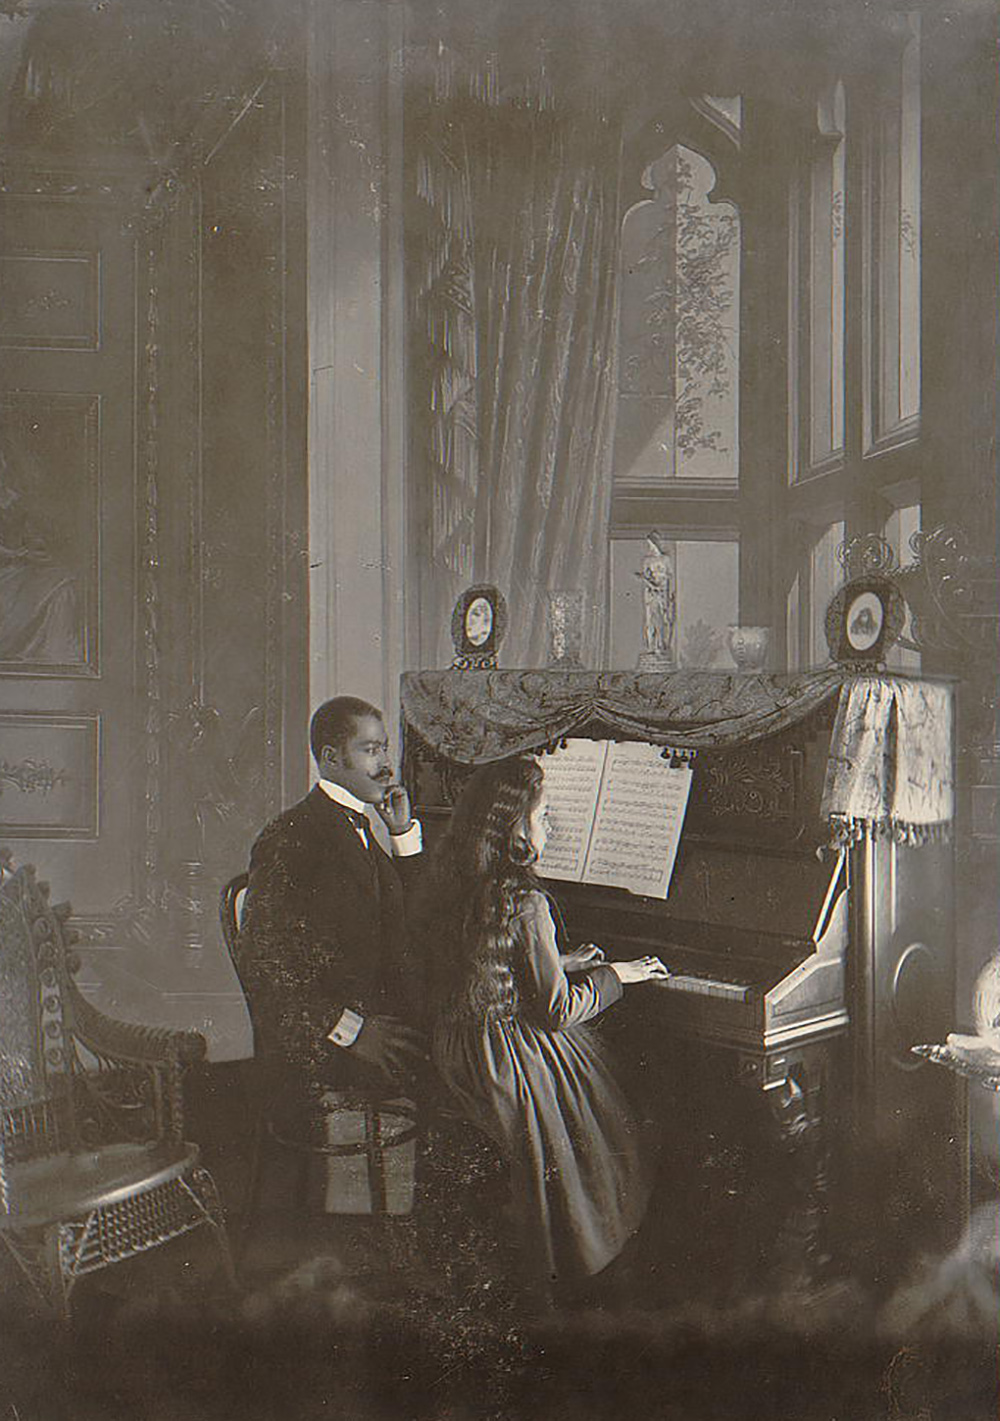 African American man giving piano lessons in the 1890s